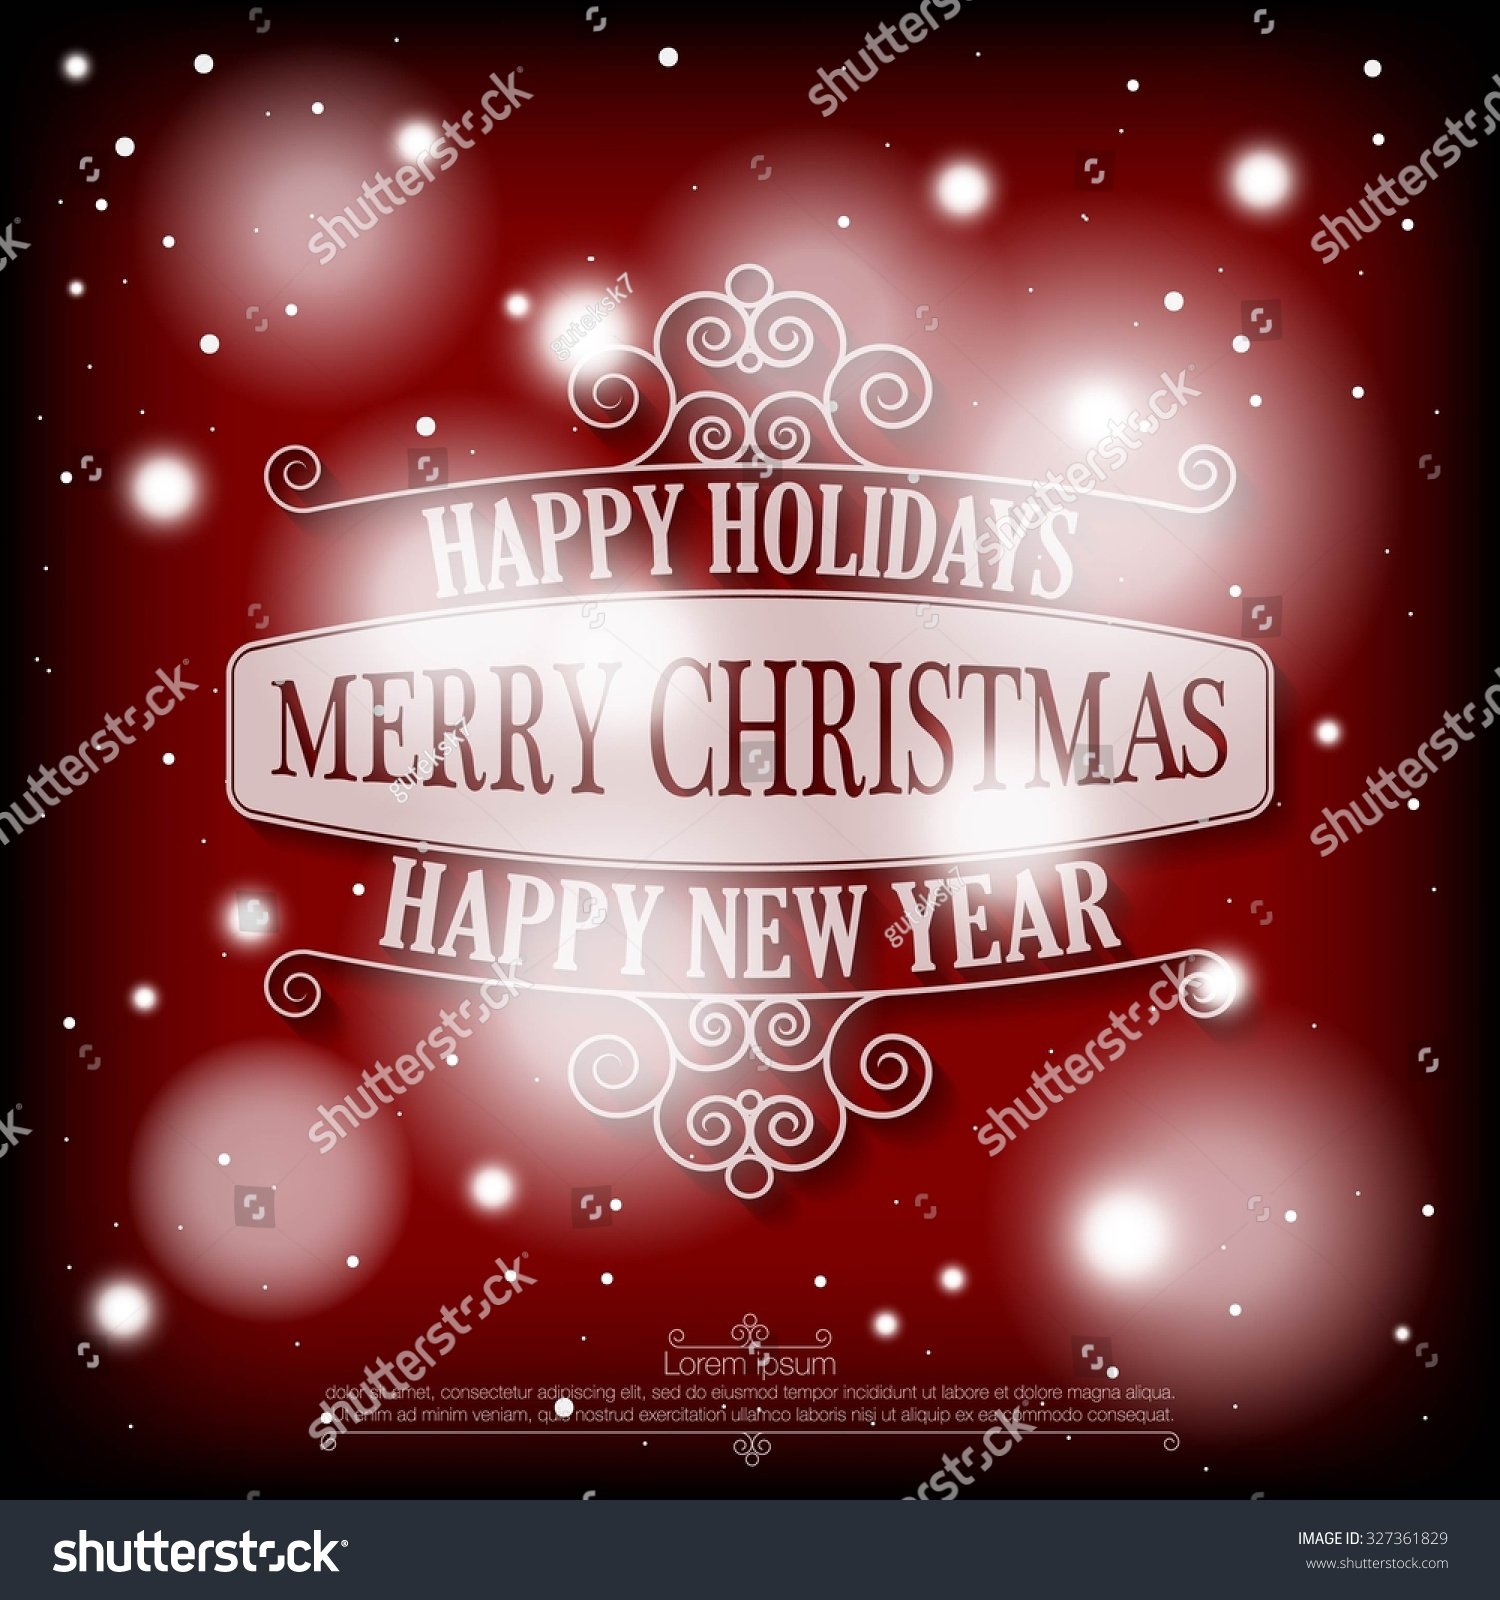 happy holidays merry christmas and a happy new year wishes card on snowy dramatic red